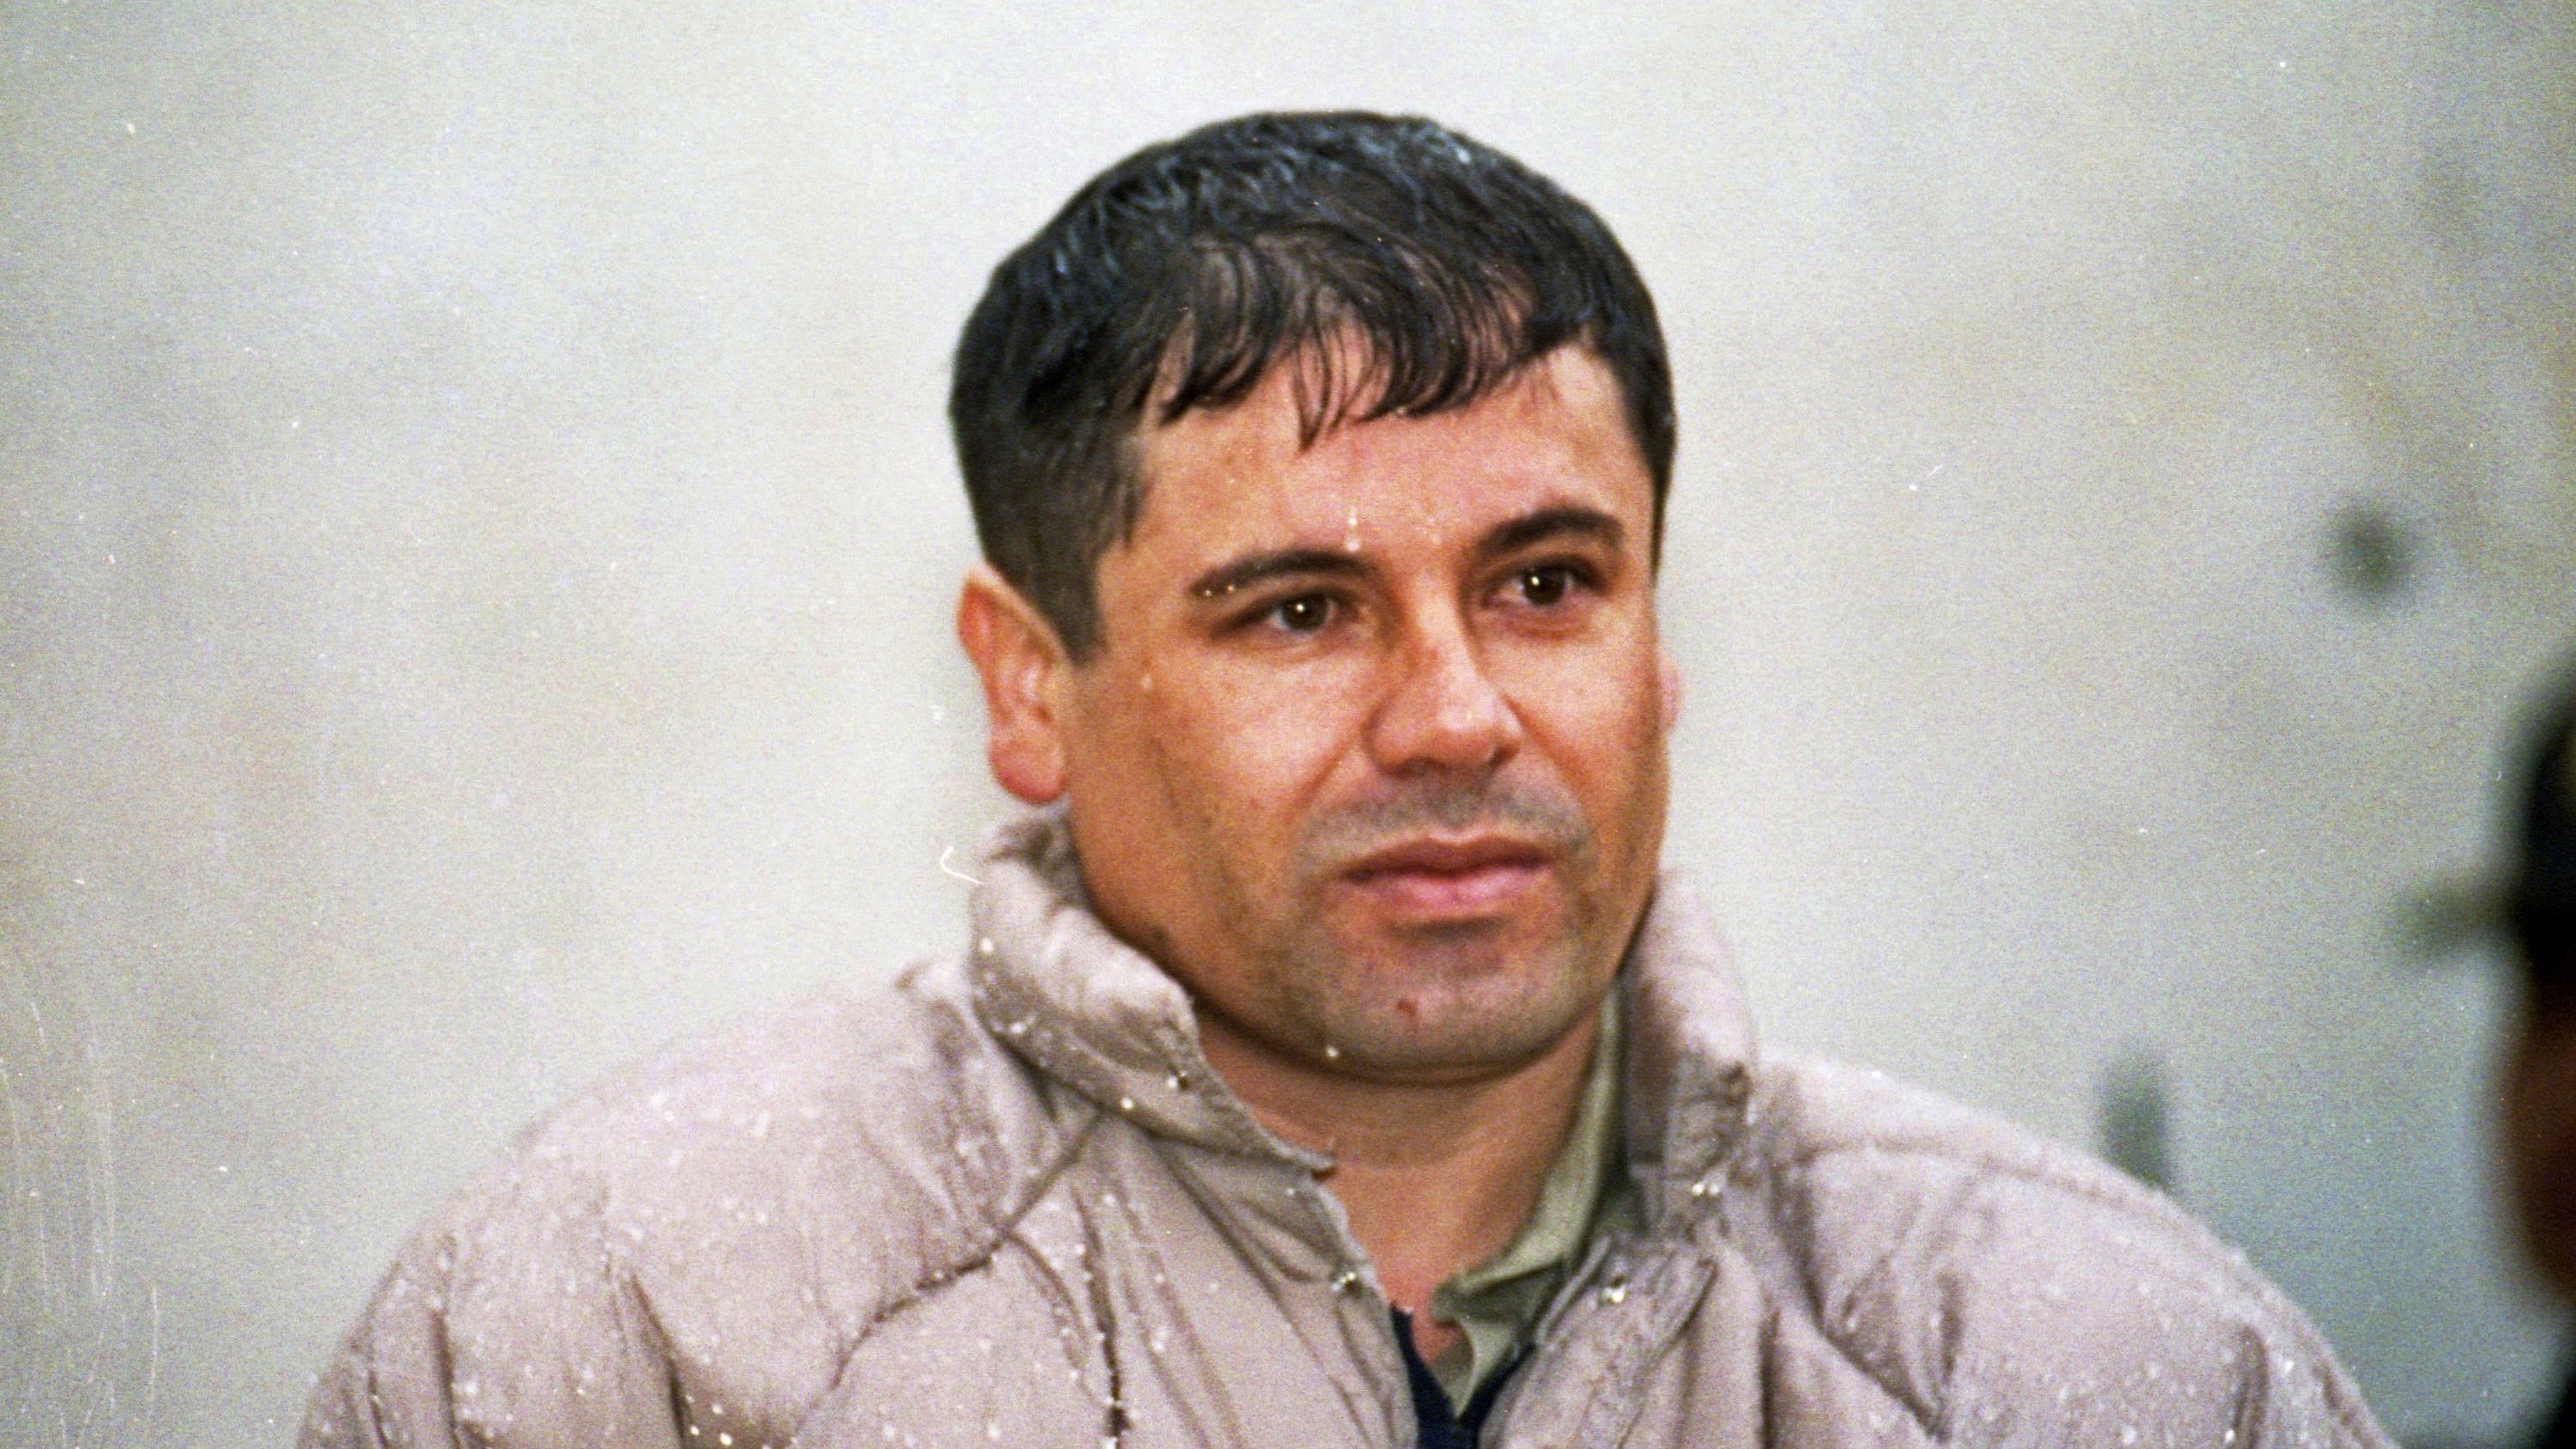 Sure, Now Mexico Will Extradite 'El Chapo' — If He's Caught Again